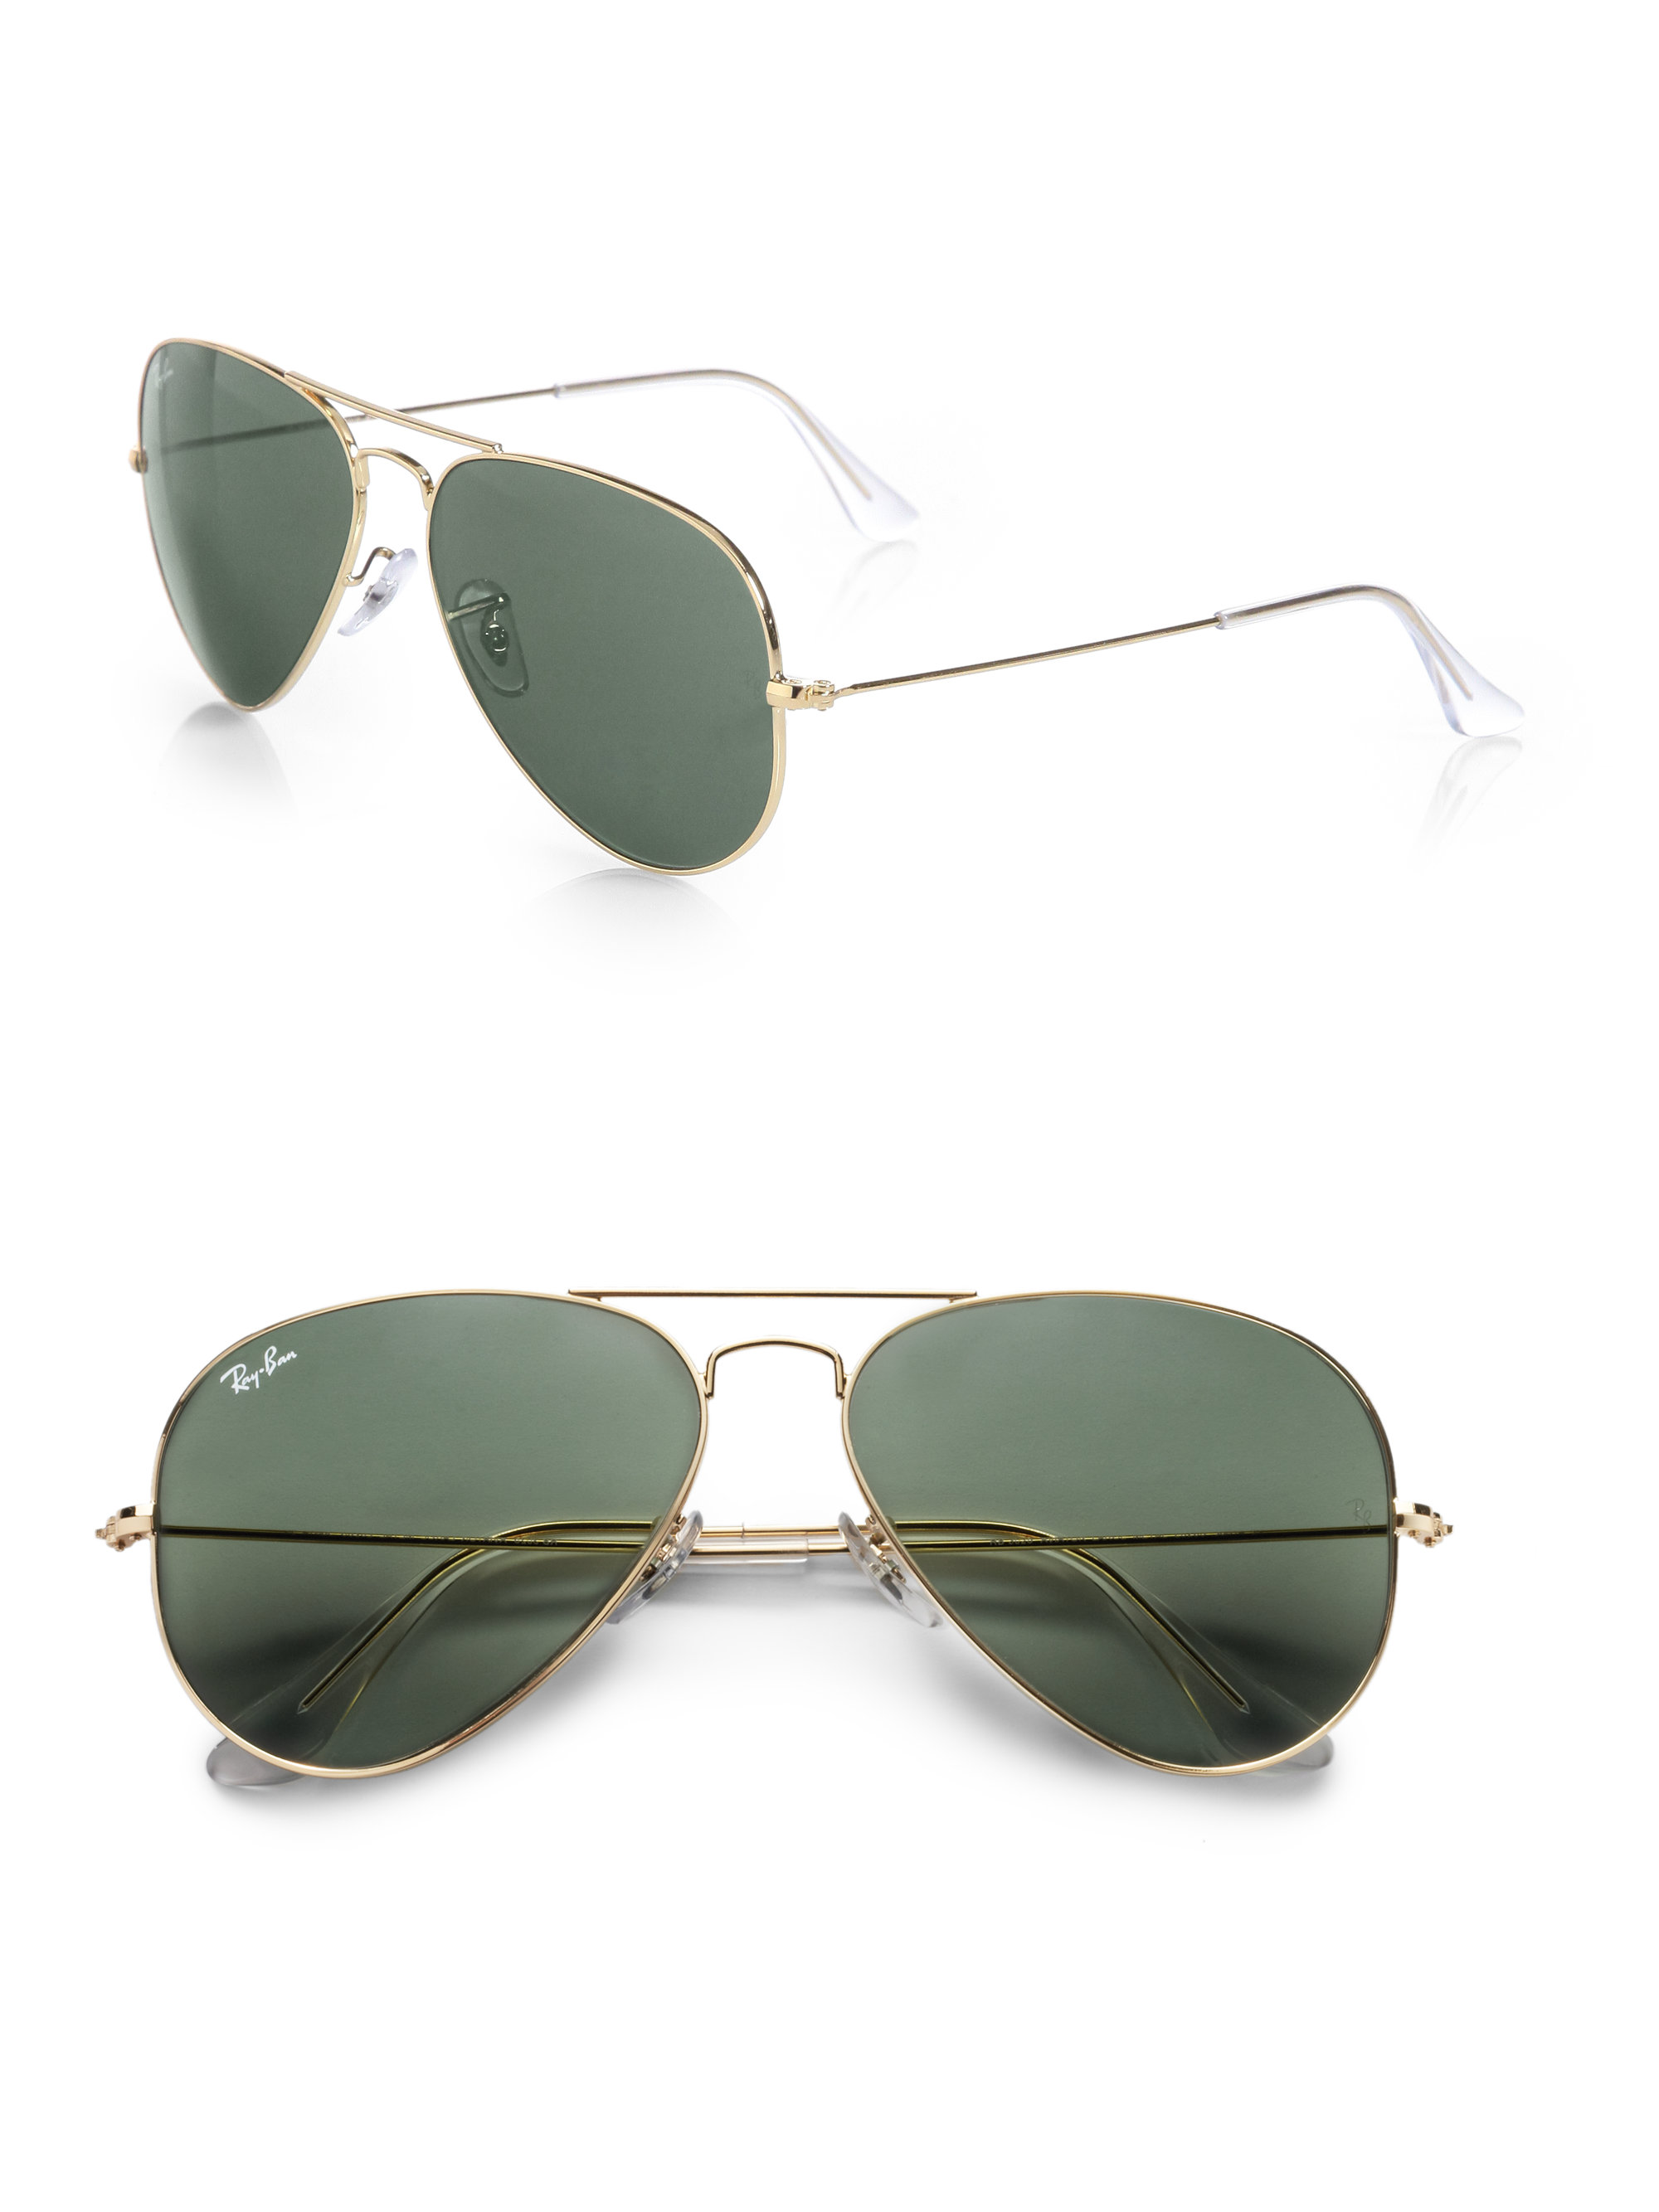 Ray-ban Original Aviator Sunglasses in Gold for Men